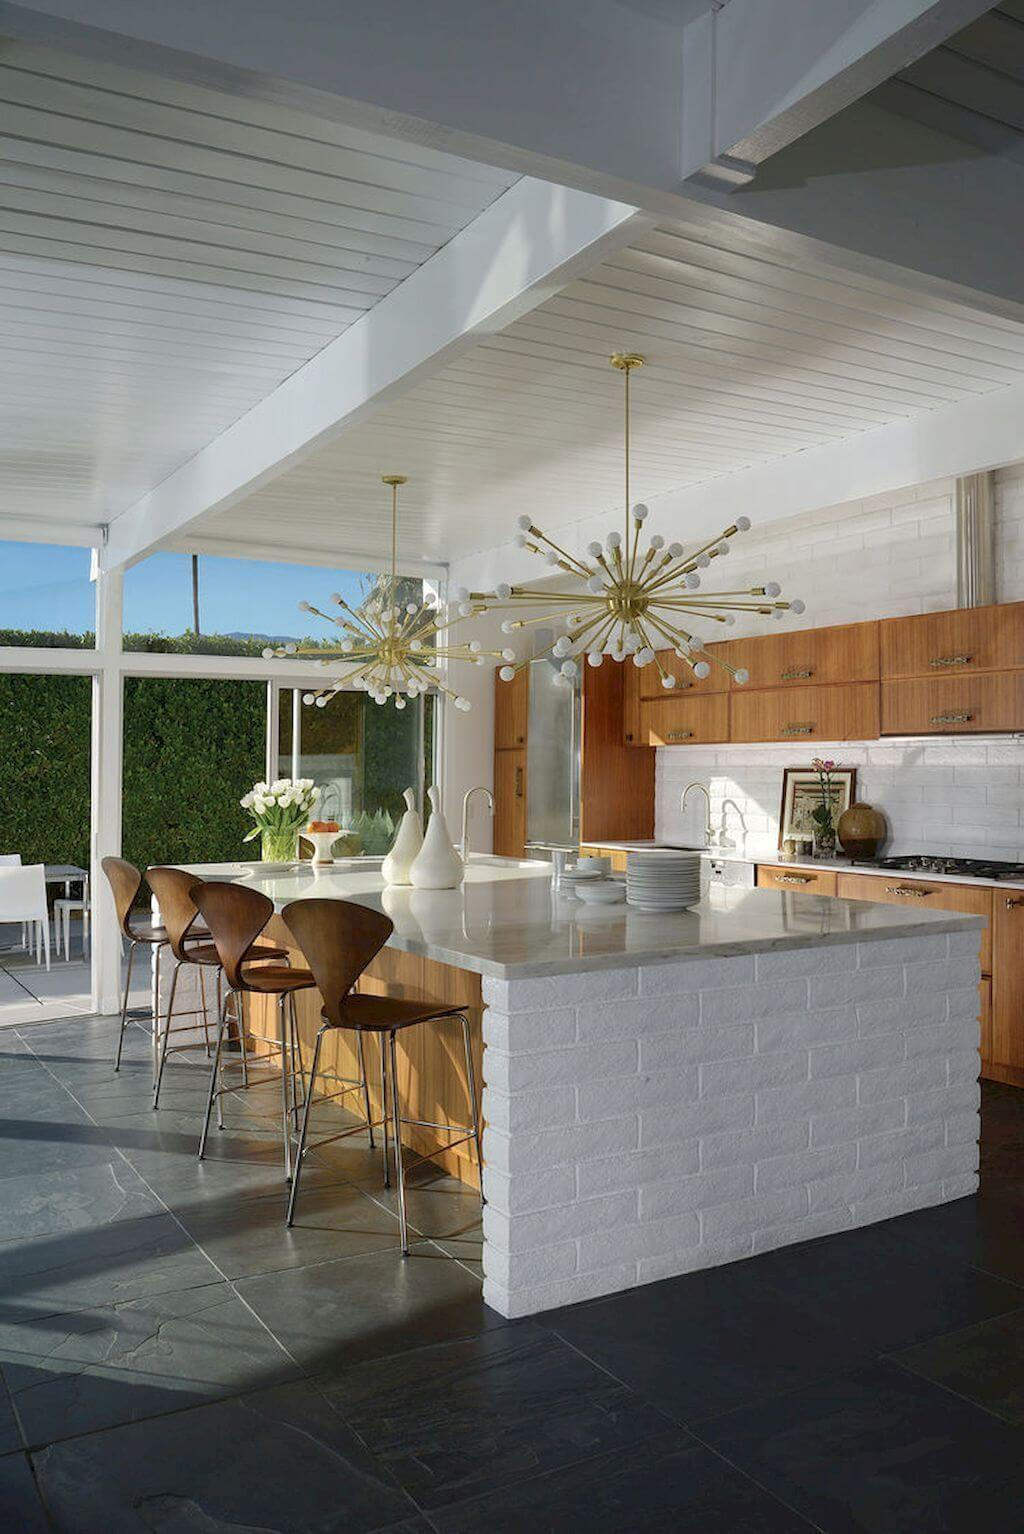 25 Mid Century Modern Kitchen Ideas To Beautify Your Cooking Area - 7C481Ddc6B1A6F0E2149134665554186